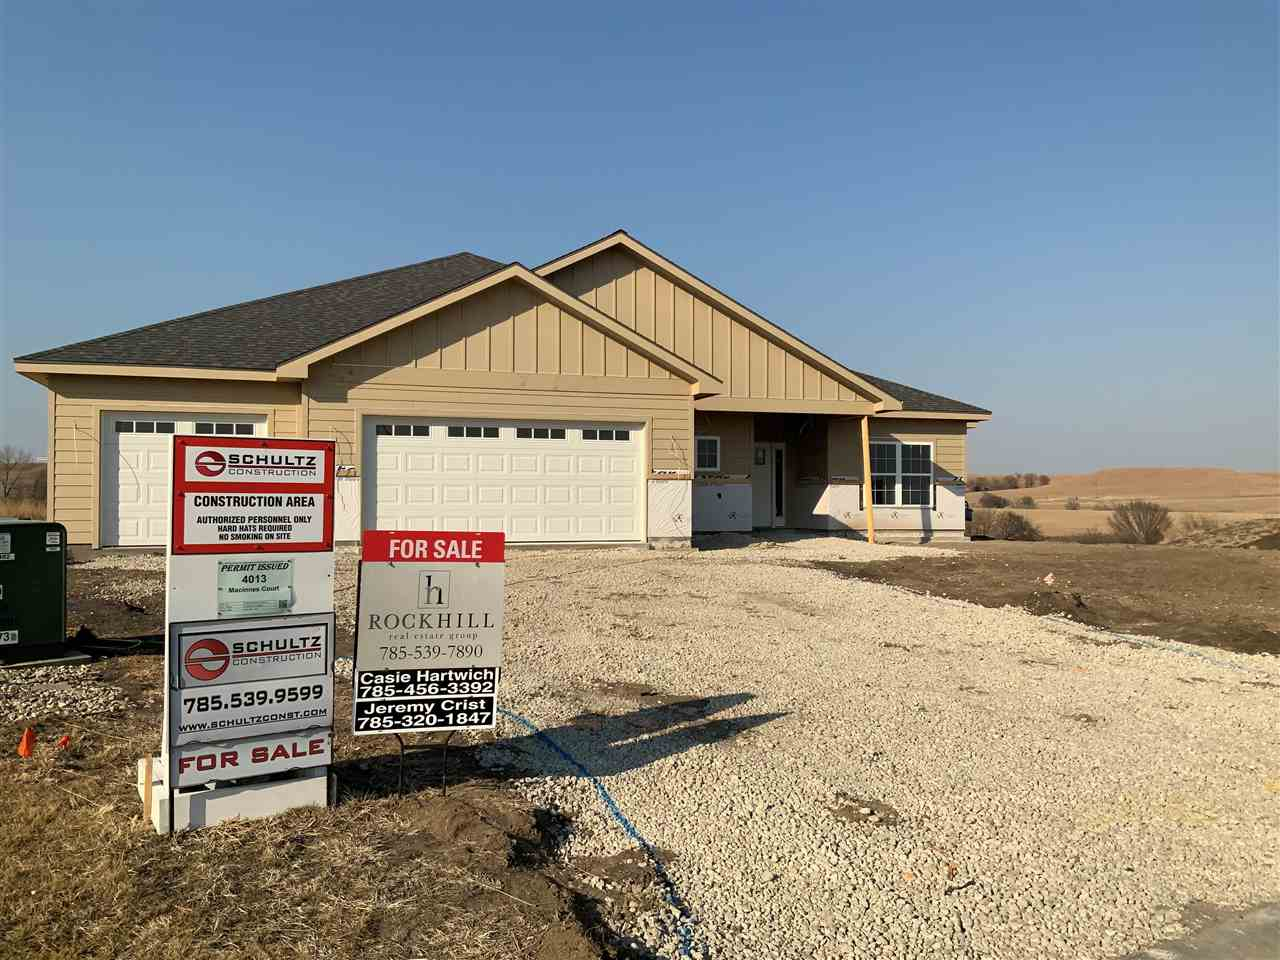 Located in USD 383, this brand new construction offers incredible finishes and craftsmanship. Built by Schultz Construction, this single family residence provides 3 bedrooms, 2 full bathrooms, cul-de-sac location and 3-car garage. Estimated completion is later this spring.